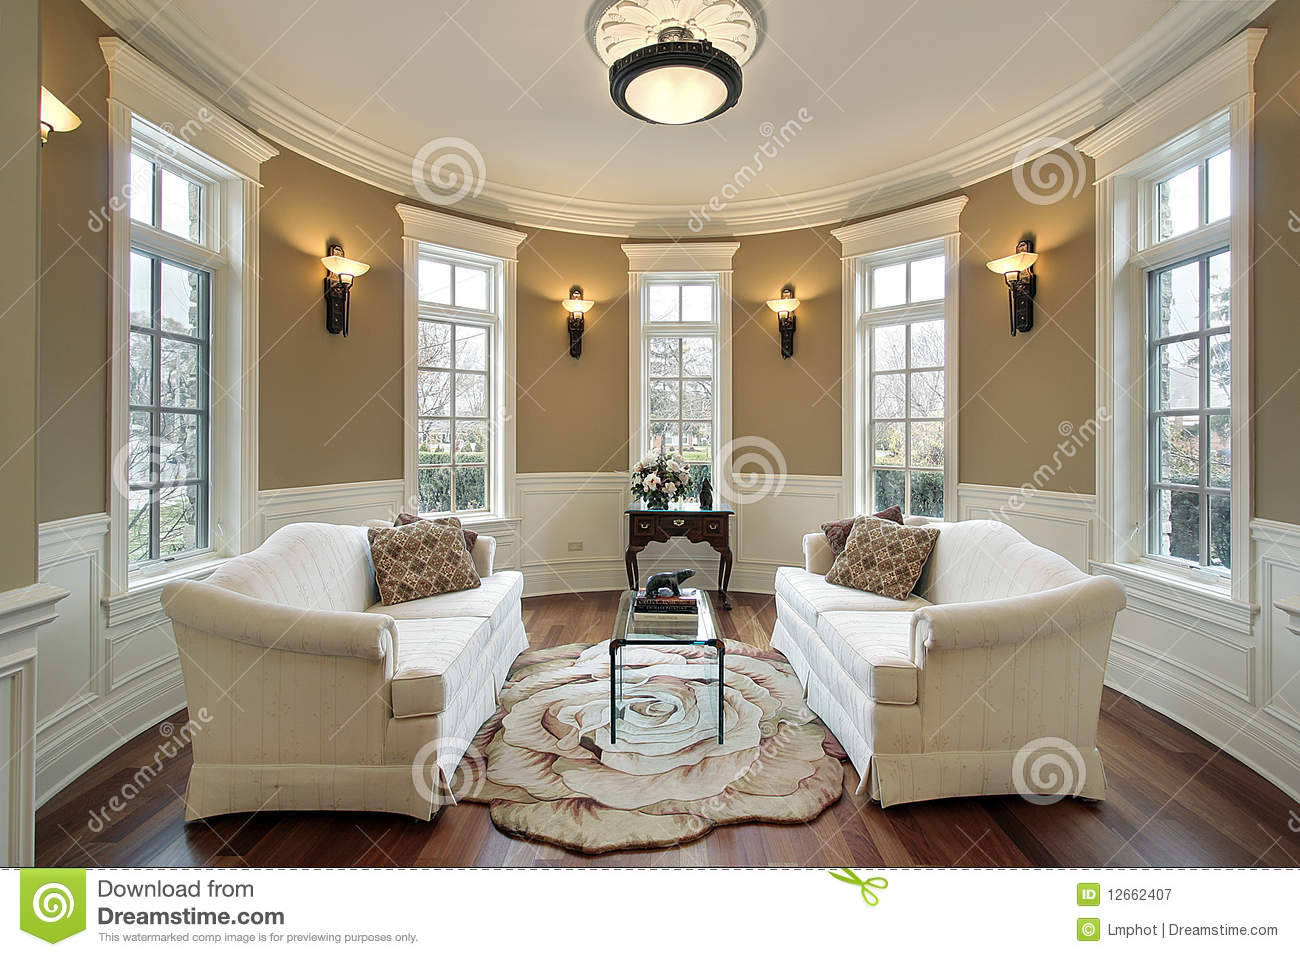 Living Room With Lighting Scones Stock Image Image Of